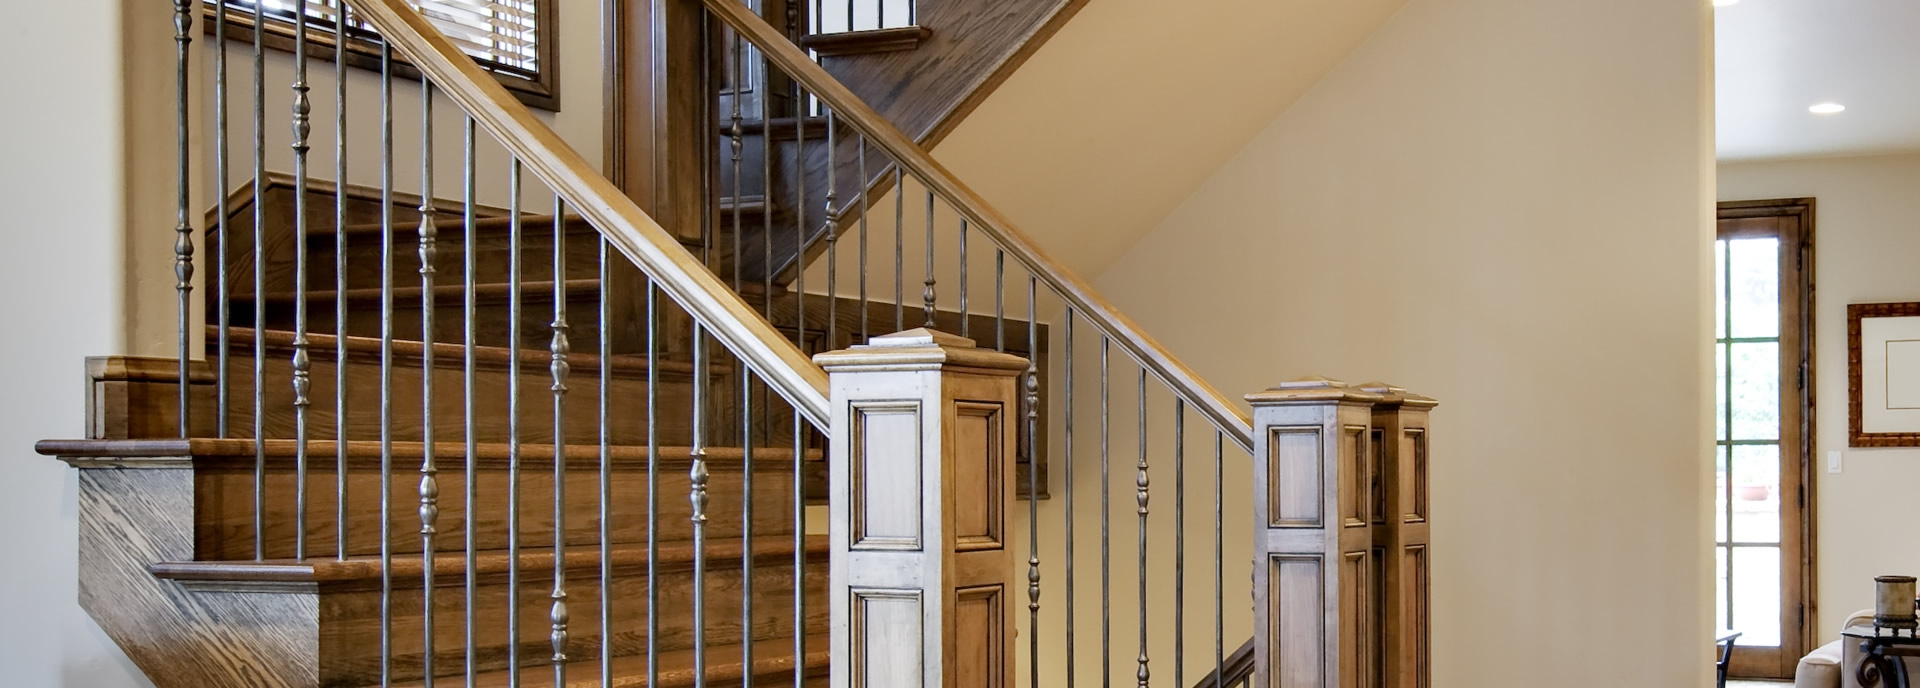 Craftsman Southern Staircase Artistic Stairs | Wood Handrail With Iron Balusters | Ash Gray | Ole Iron | Upstairs | Wrought Iron | Low Profile